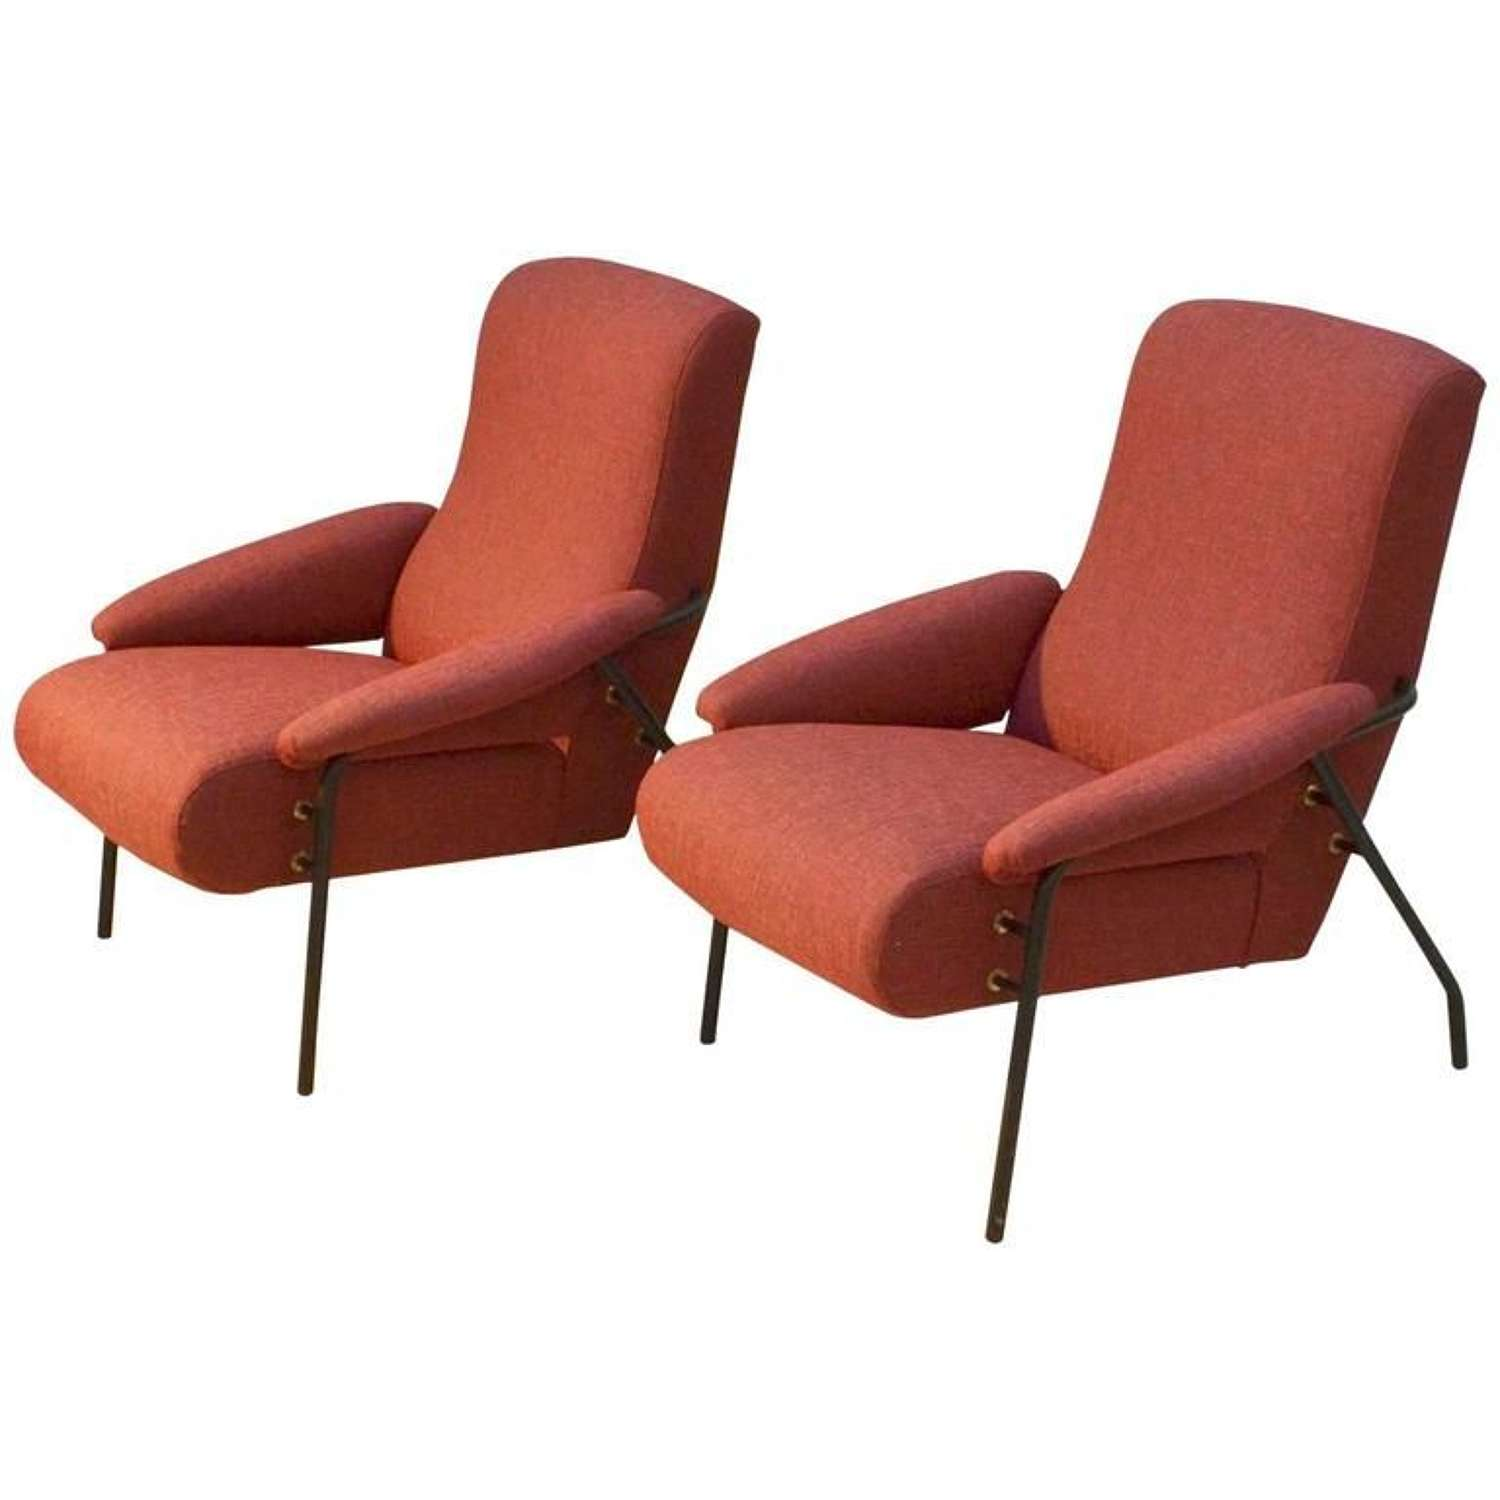 Pair Modernist Lounge Chairs in Burnt Orange Italy 1960's